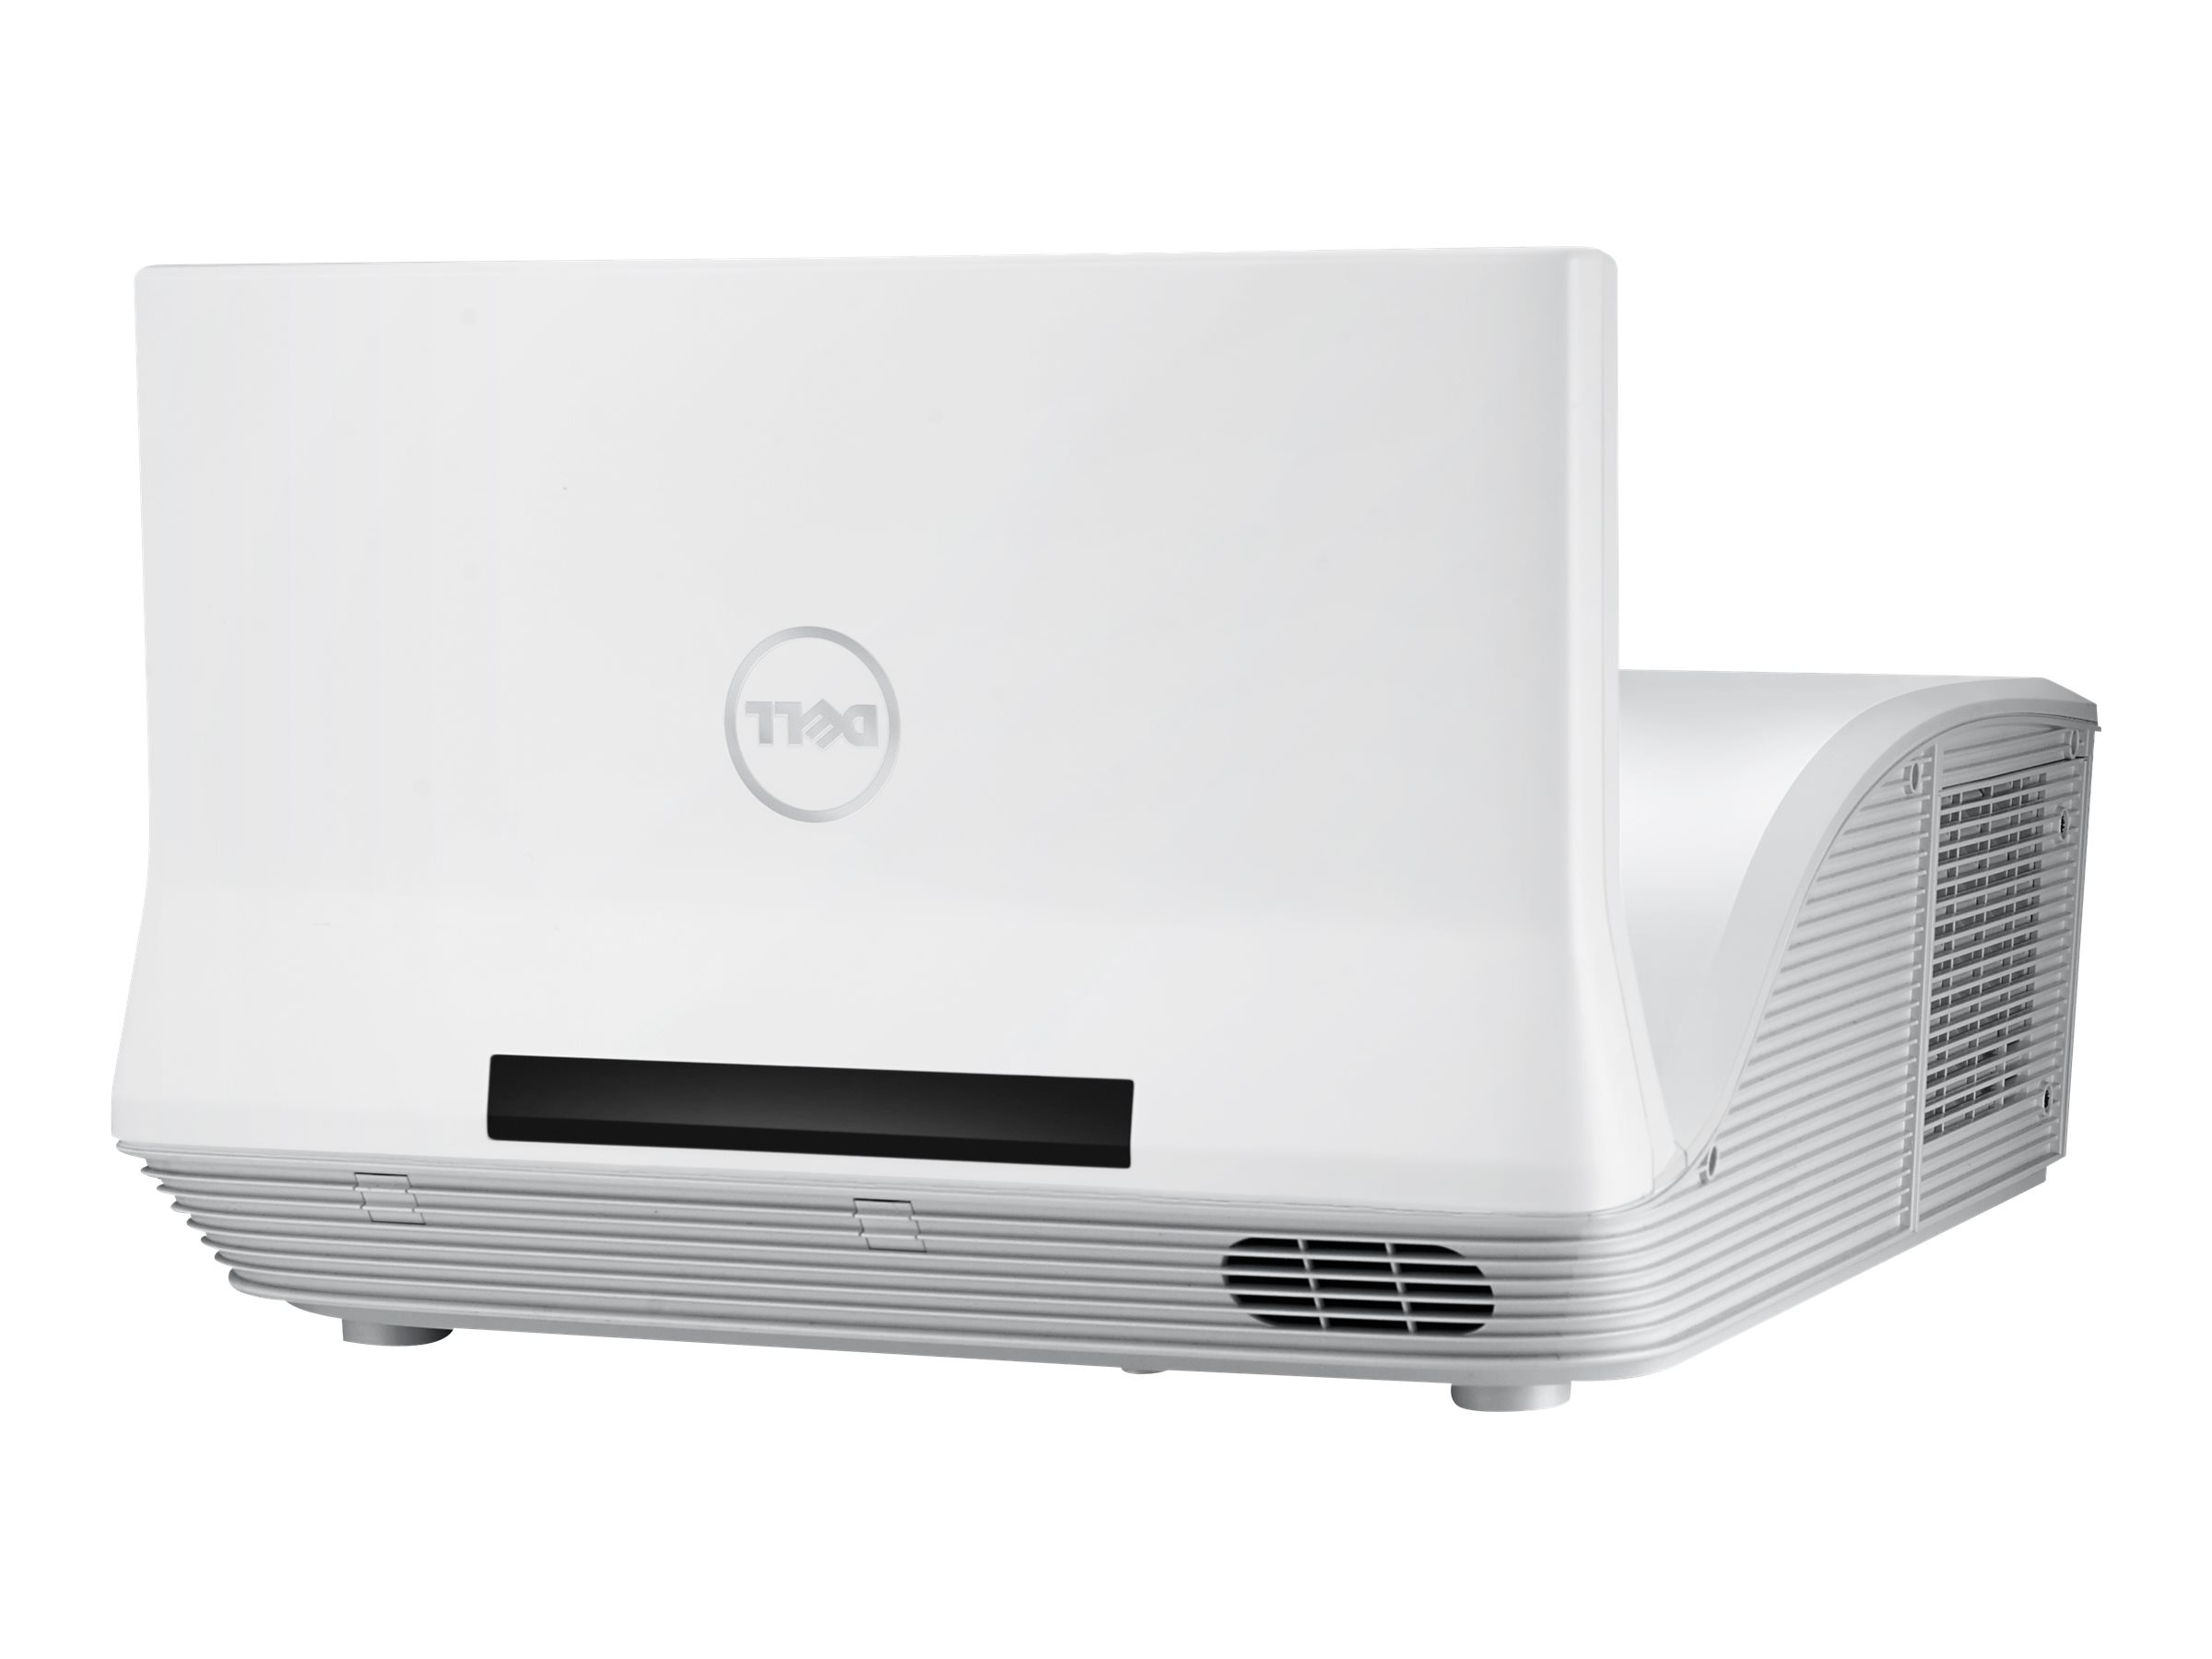 Dell S510 WXGA Interactive Projector, 3100 Lumens, White, S510, 18492197, Projectors